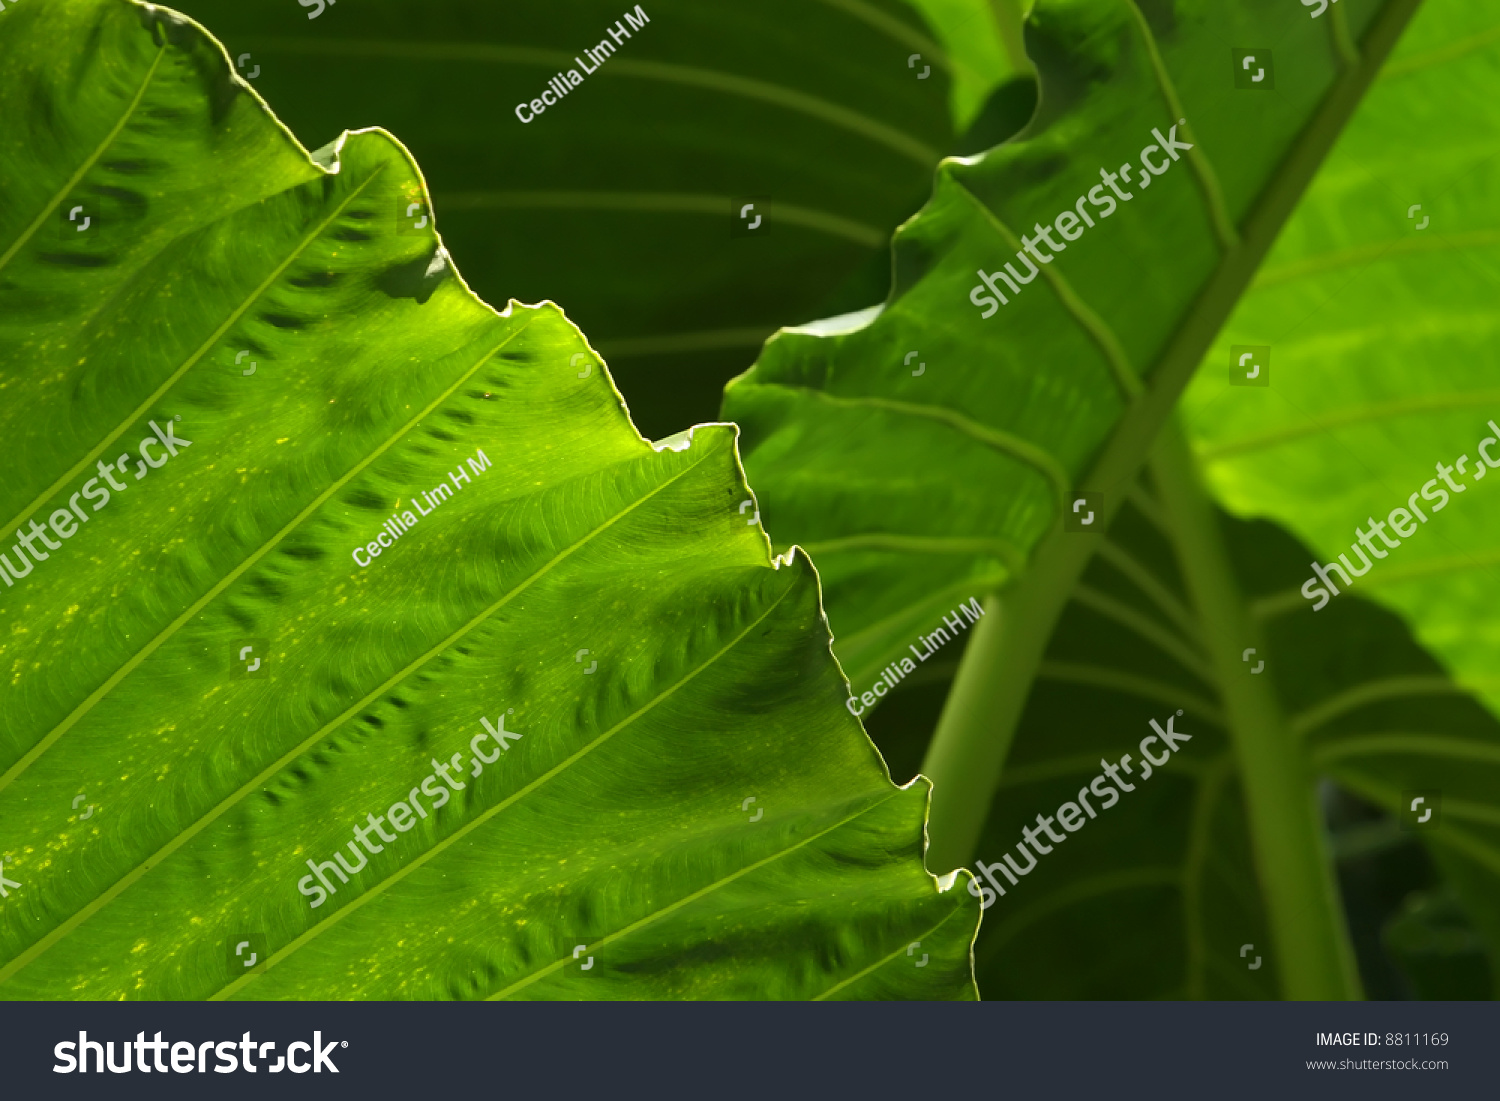 Layers Of Abstract Yam Leaves Stock Photo 8811169 : Shutterstock